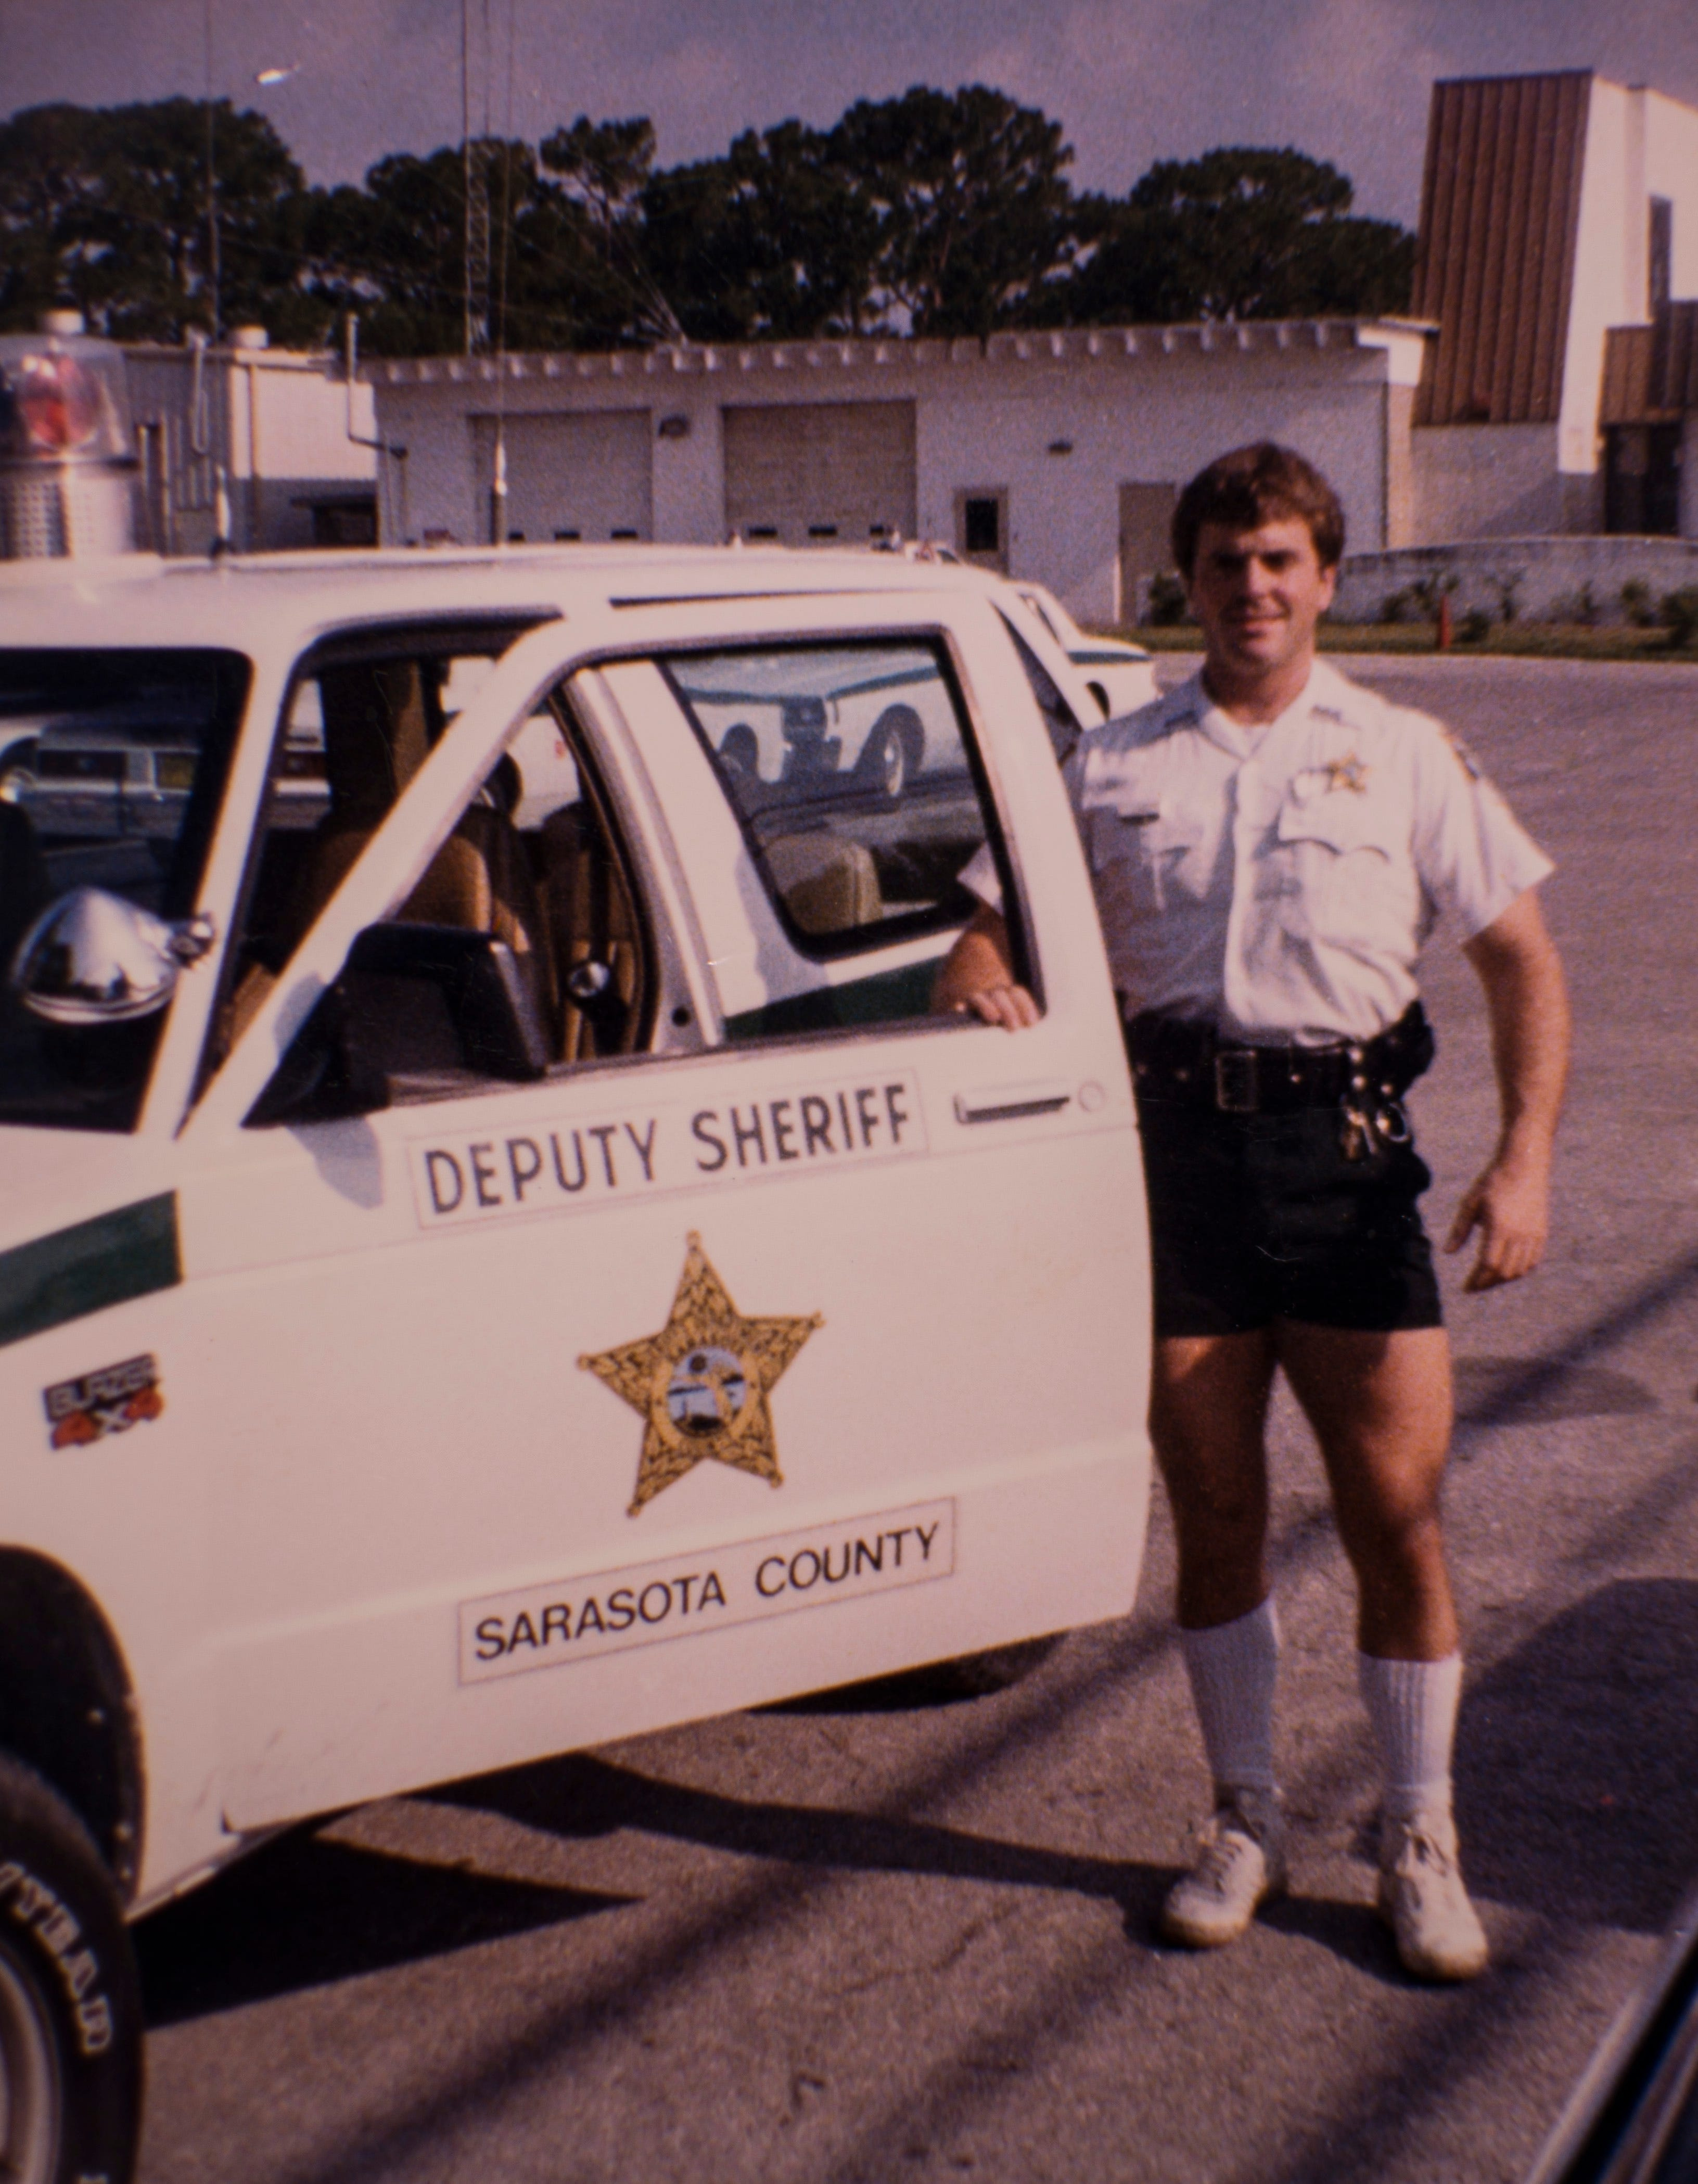 Michael Lowe shown in the early 1990s when he worked at the Sarasota County Sheriff's Department in Florida.